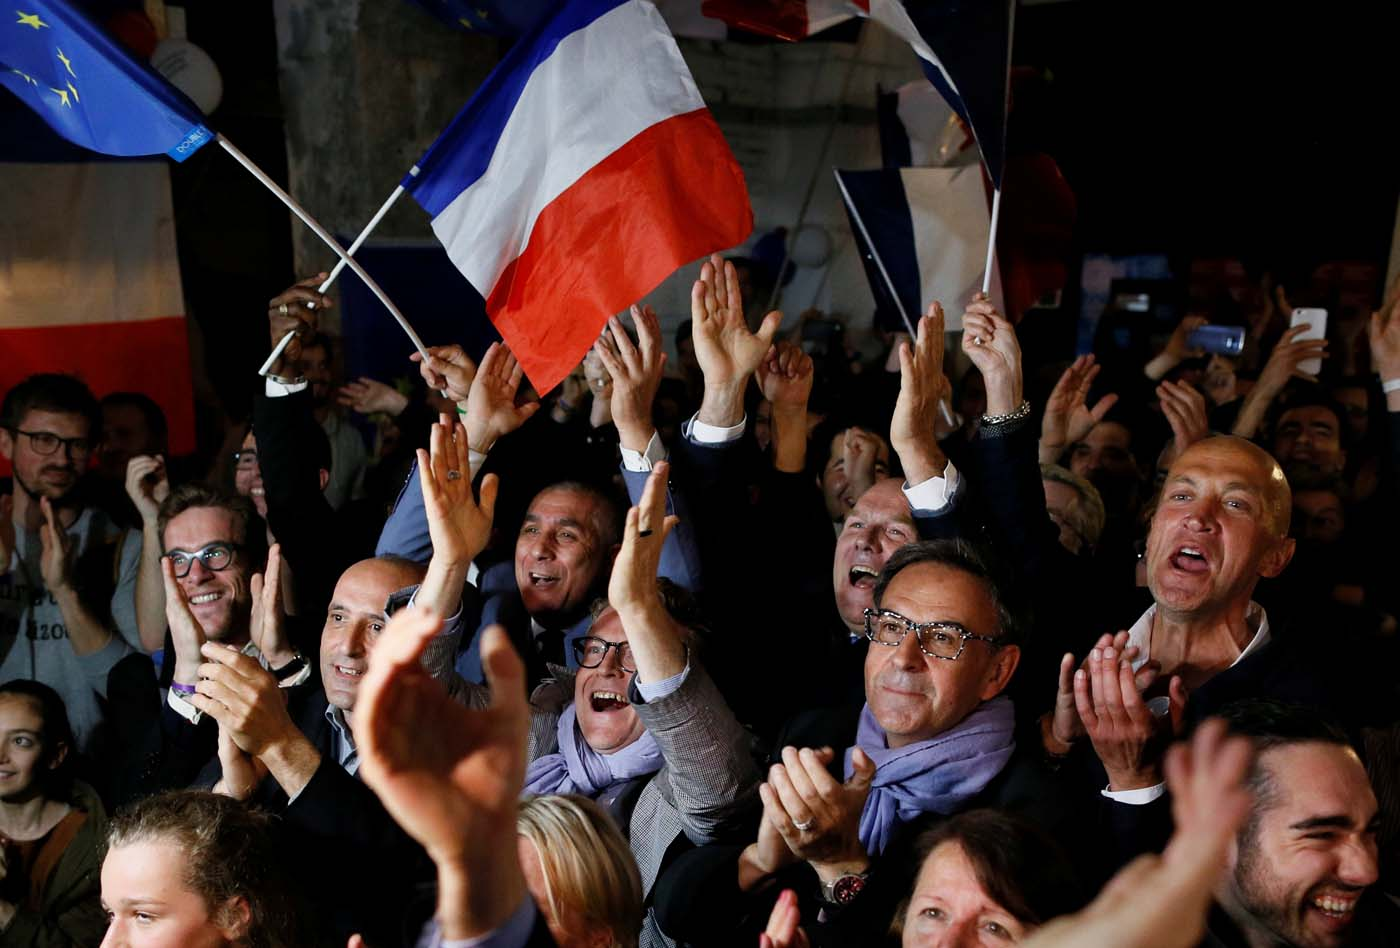 Supporters of Emmanuel Macron celebrate after the second round of 2017 French presidential election, in Lyon, France, May 7, 2017. REUTERS/Robert Pratta